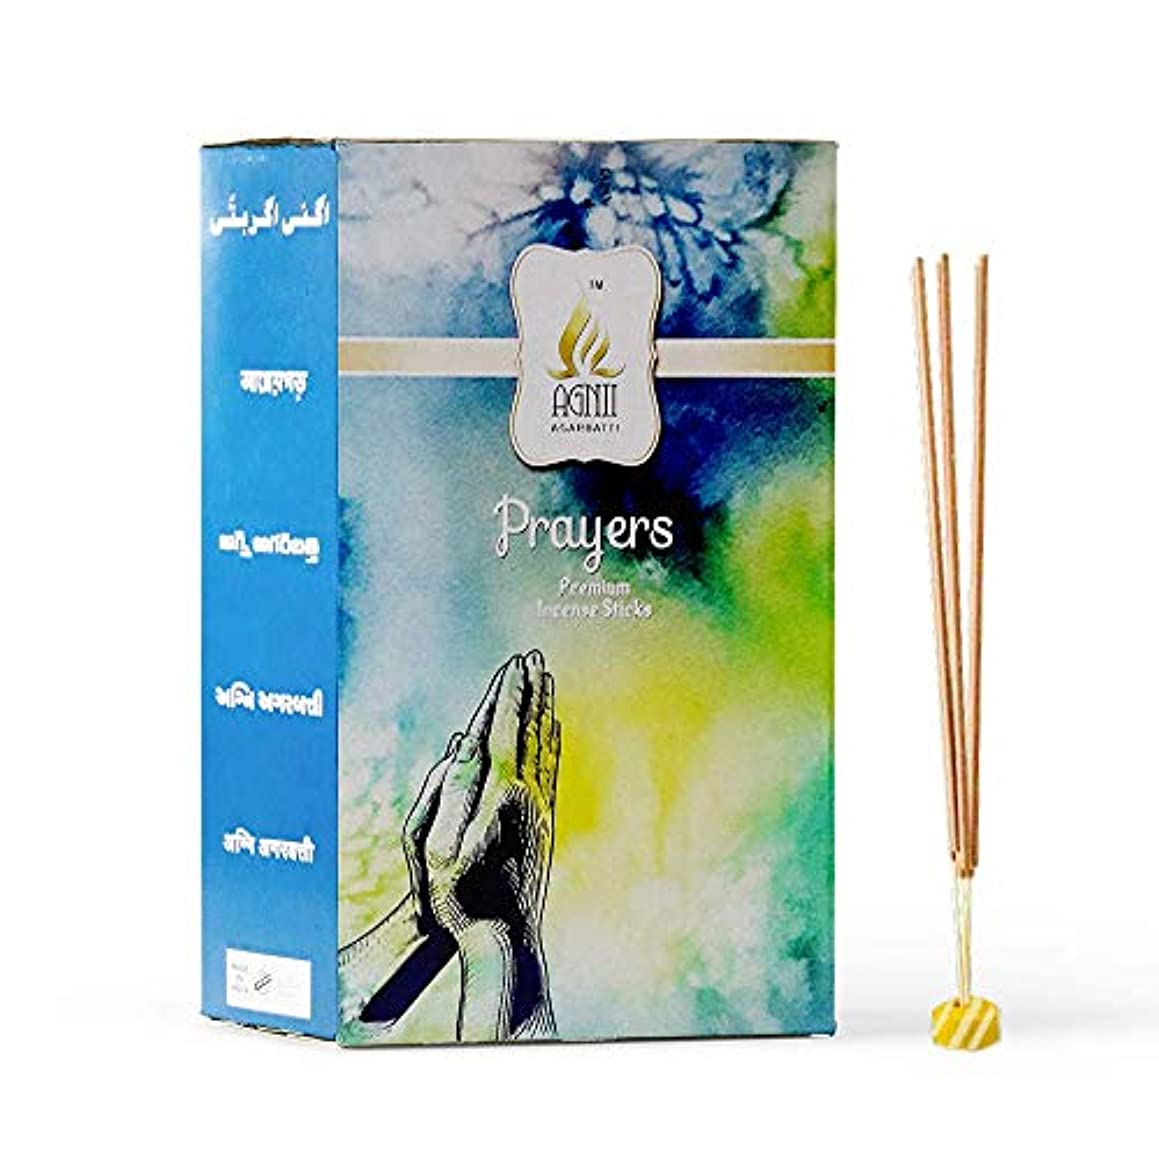 ロシアクリアマラドロイトAGNII AGARBATTI Prayers Incense Sticks (18 GRM_Brown) Pack of 12